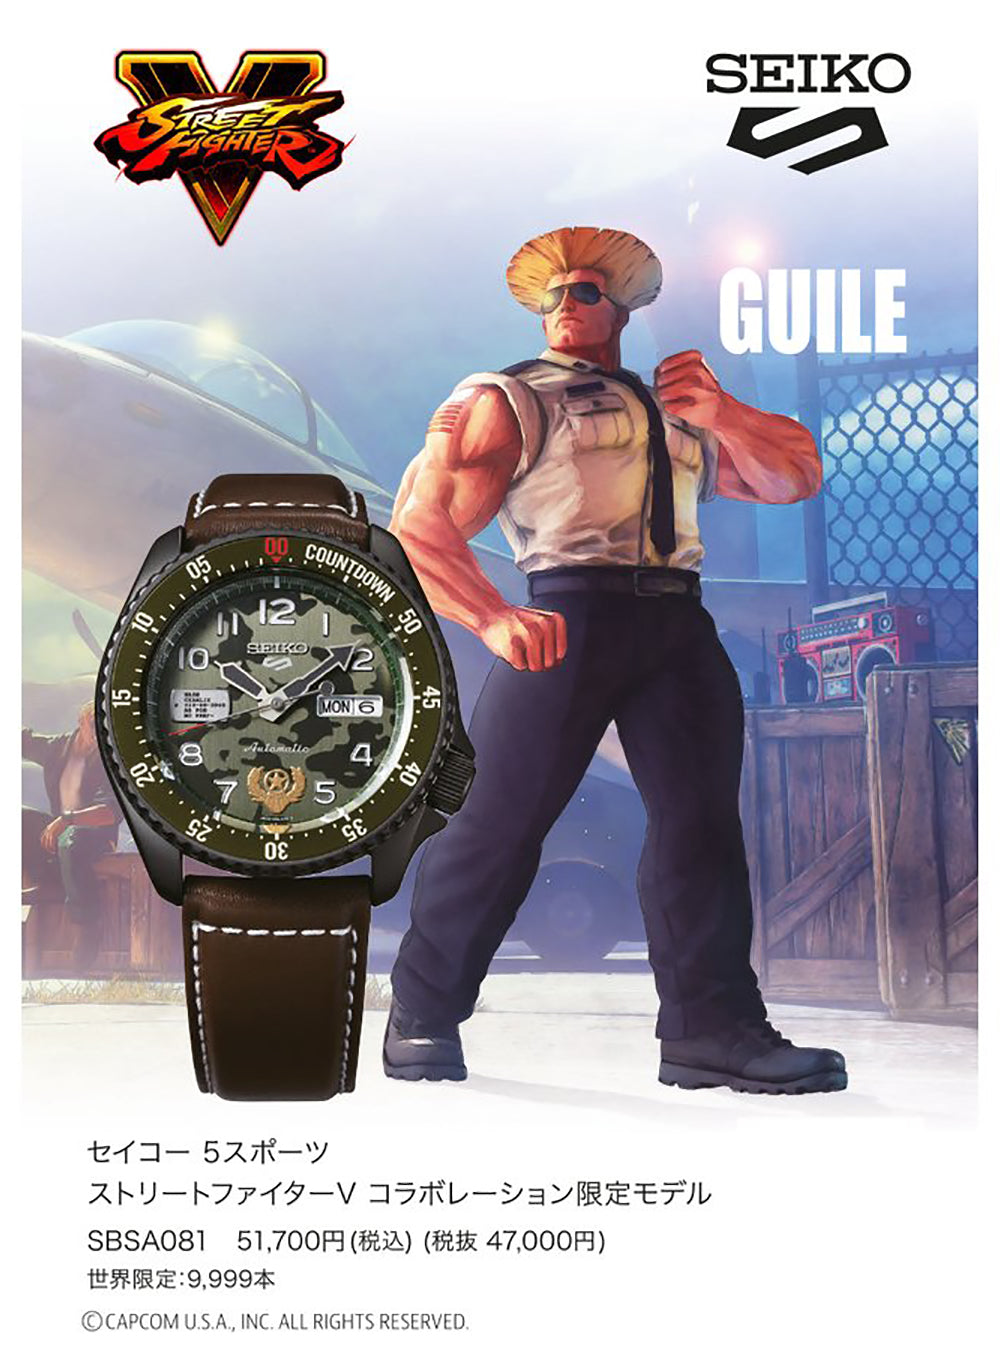 SEIKO 5 SPORTS STREET FIGHTER V LIMITED EDITION GUILE MODEL SASB081